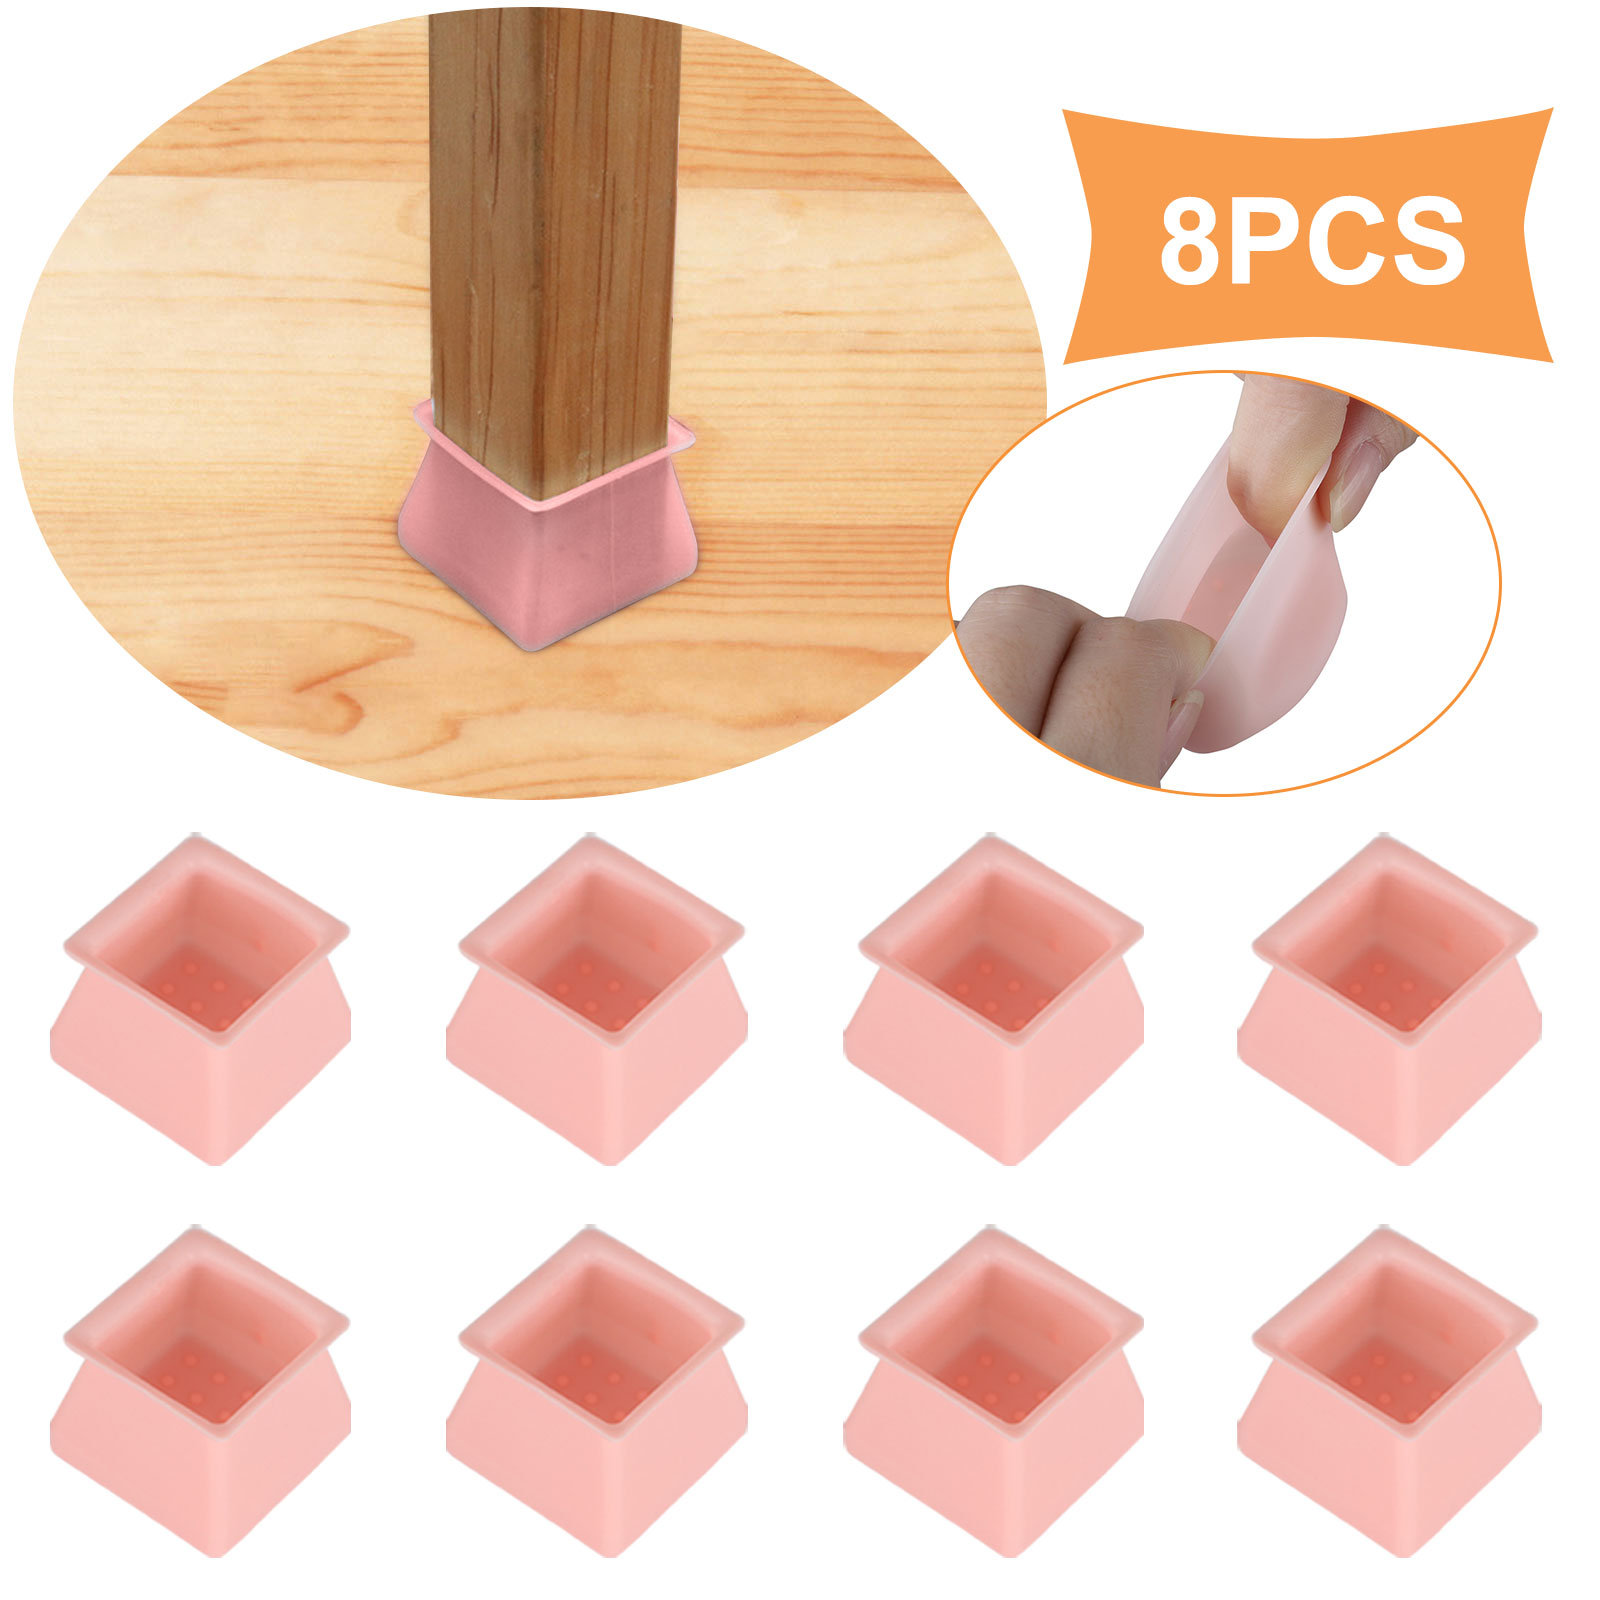 4//8//16pcs Chair Leg Silicone Pad Furniture Table Feet Cover Caps Floor Protector